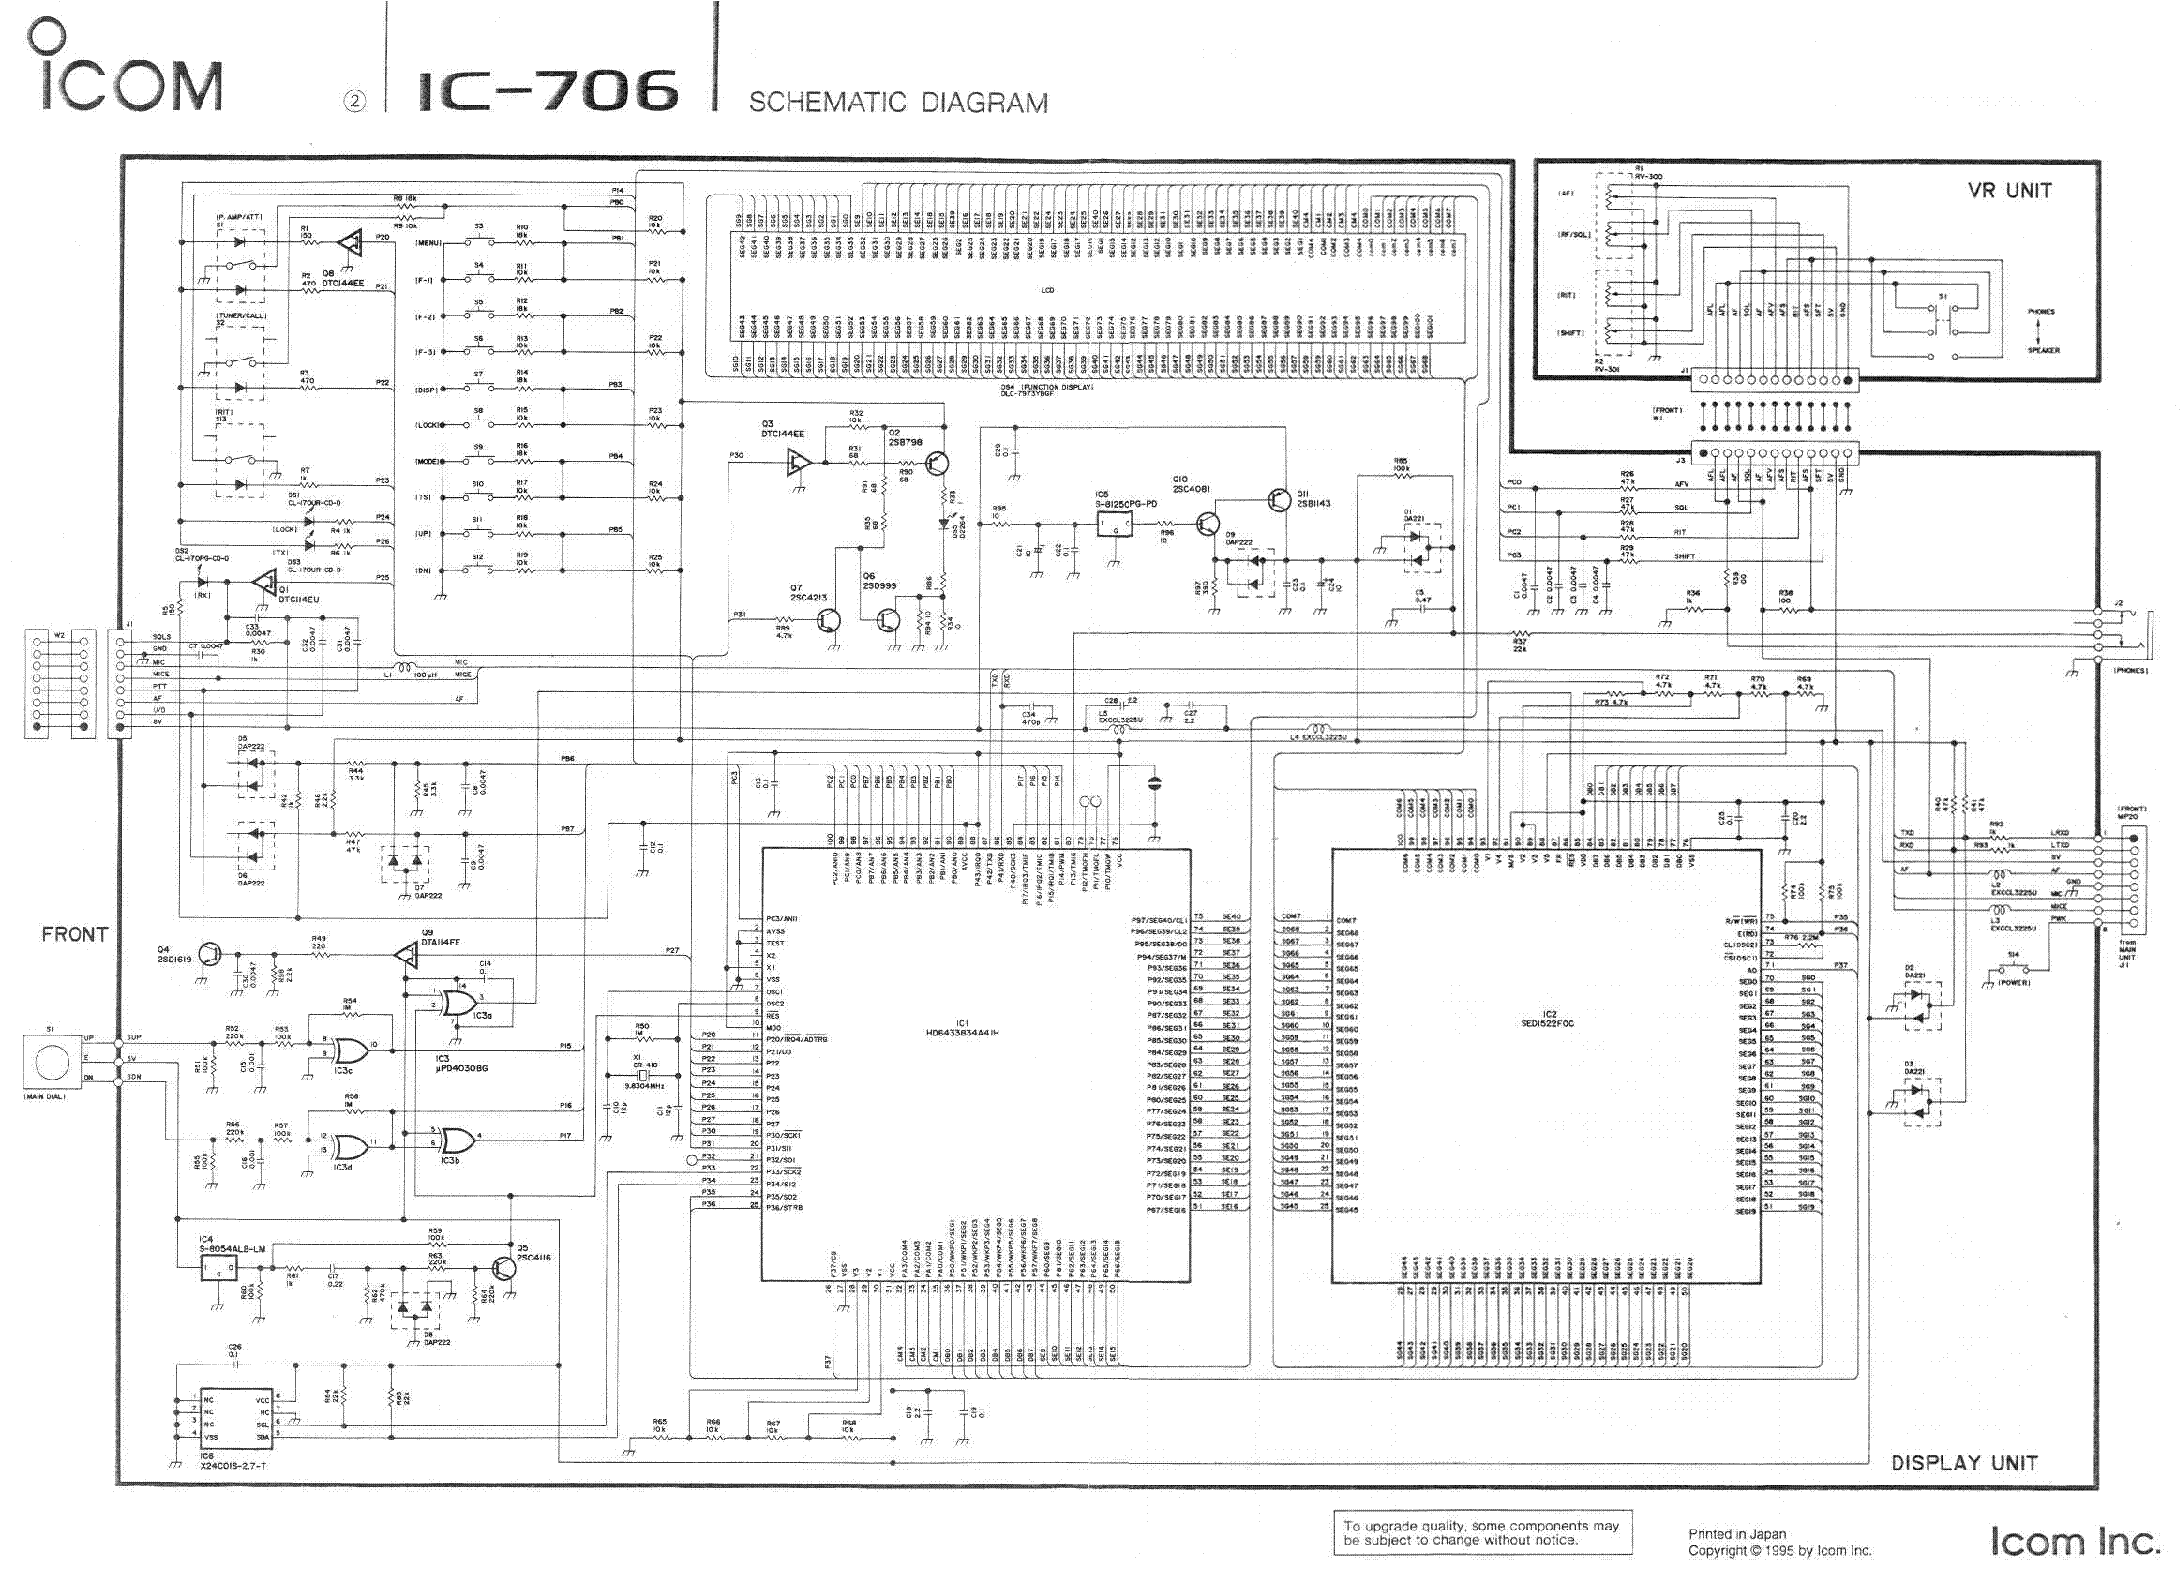 Icom Ic 706 Schematic Service Manual Download Schematics